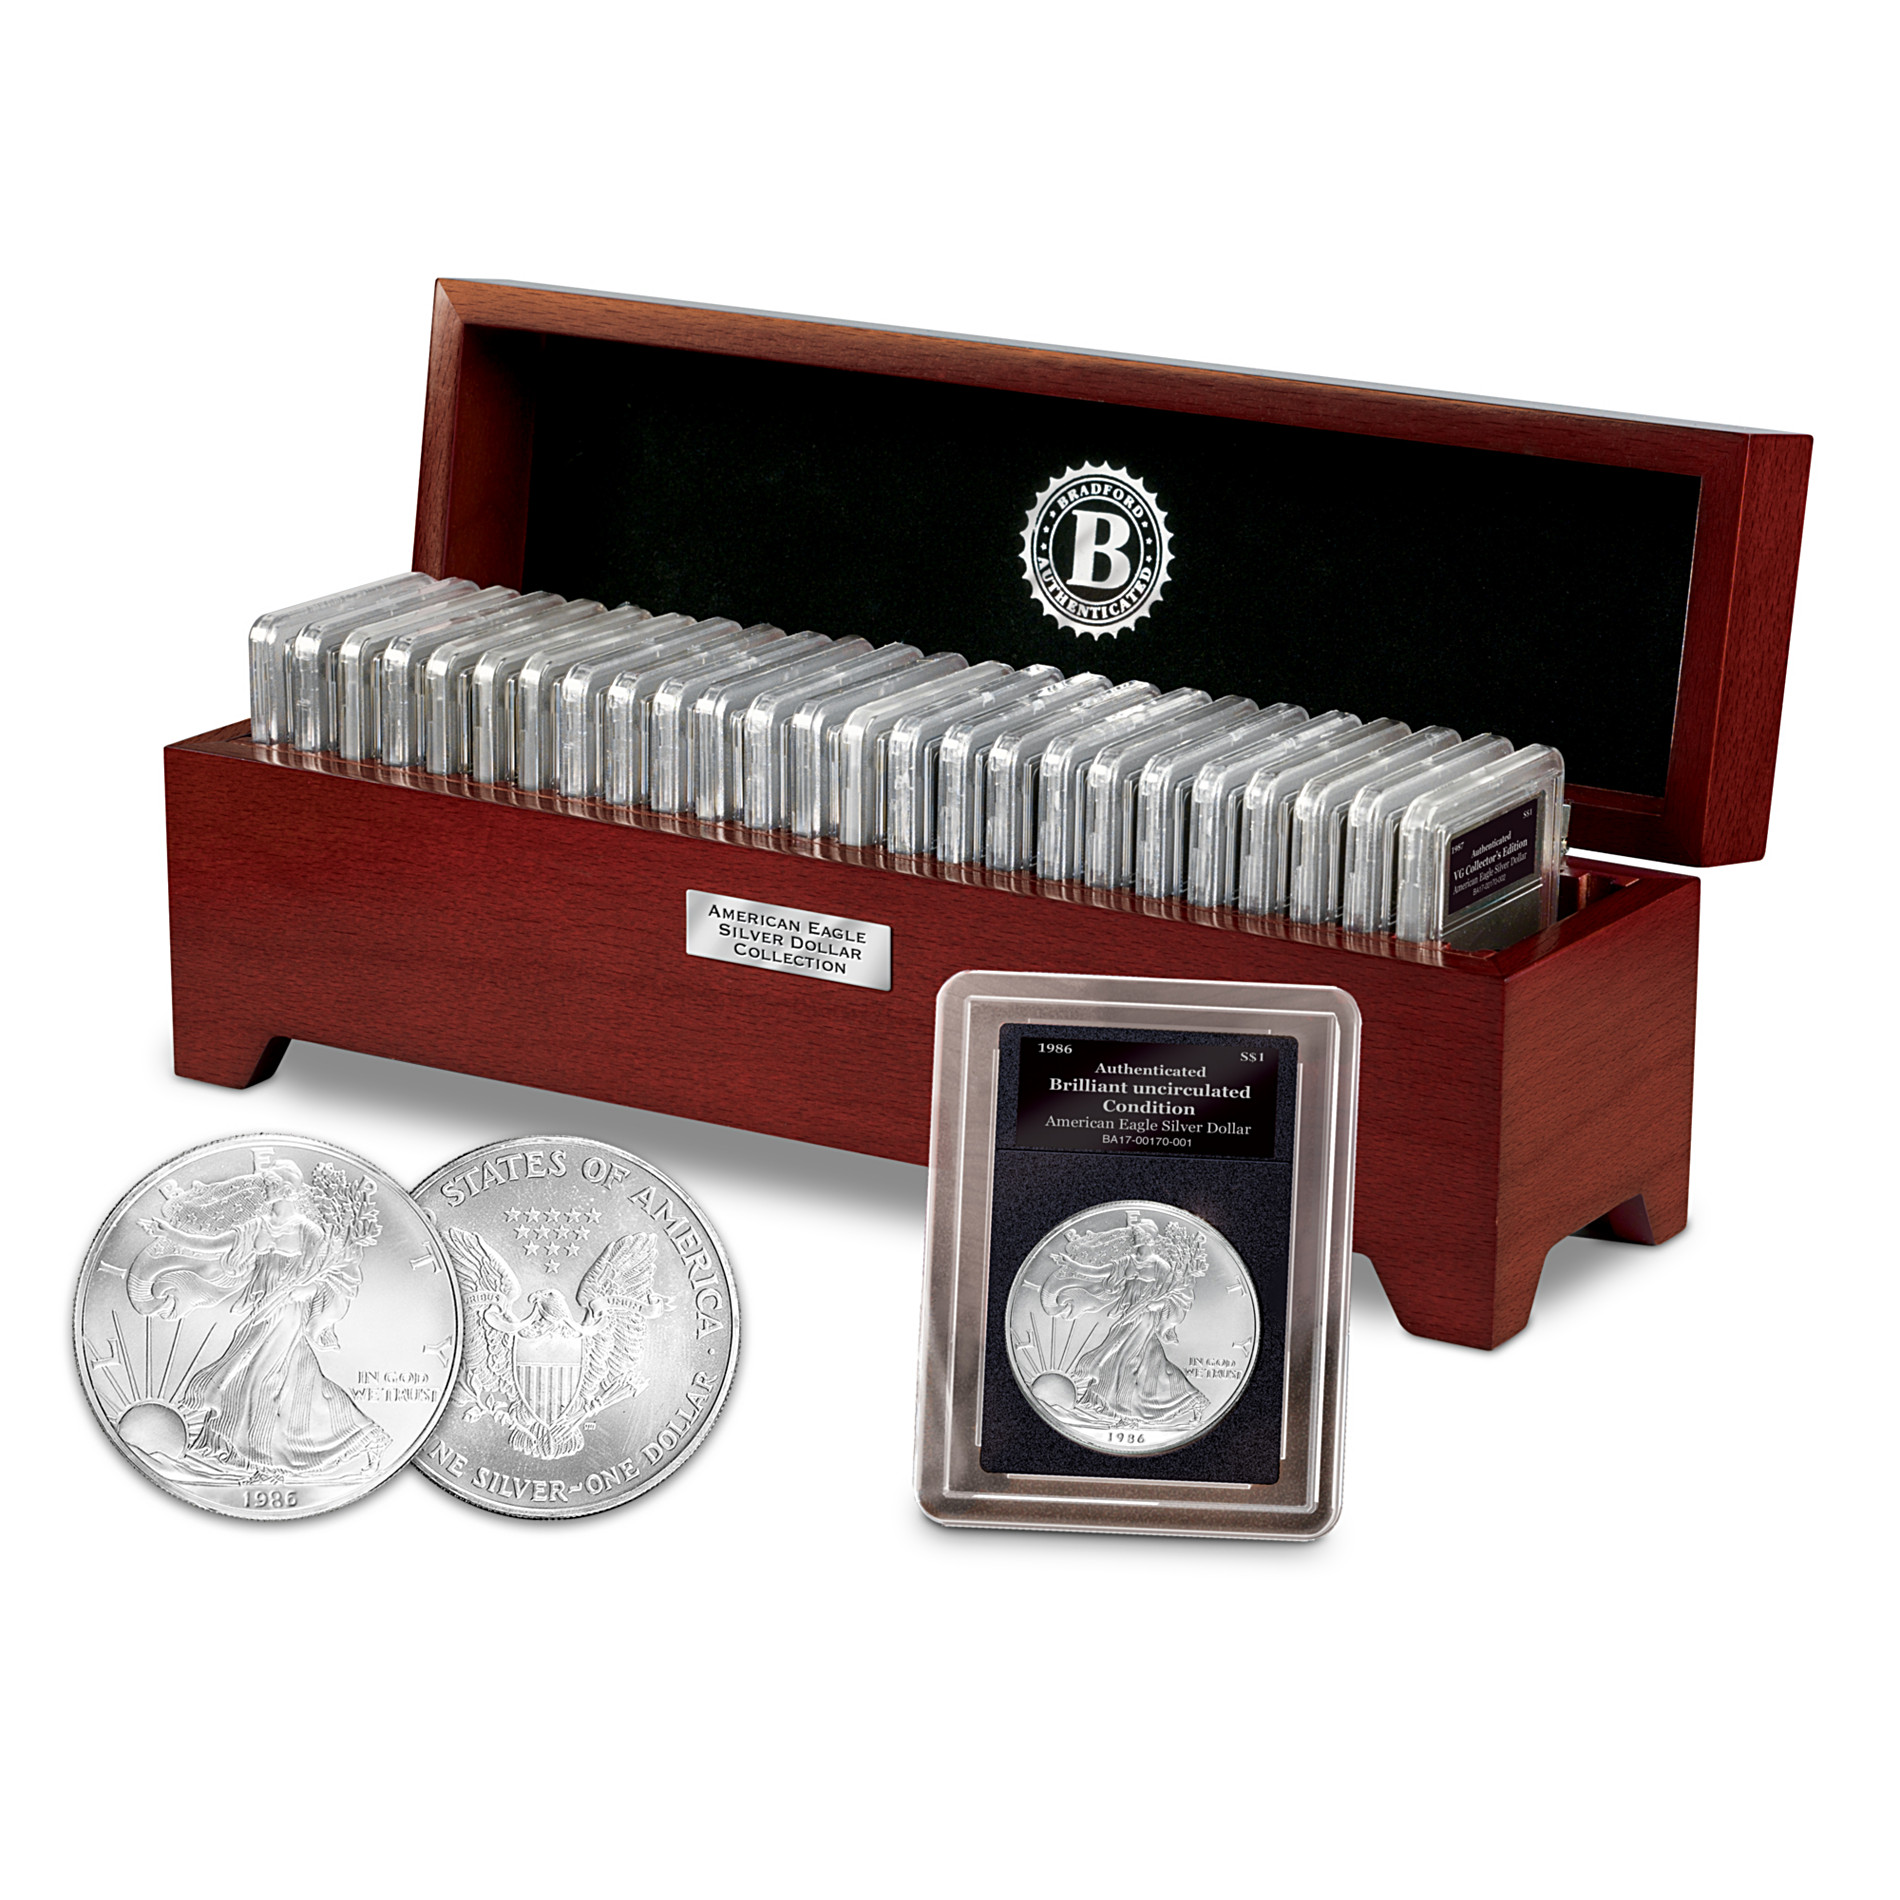 Bradford Authenticated Complete American Eagle Silver Dollar Coin Collection at Sears.com